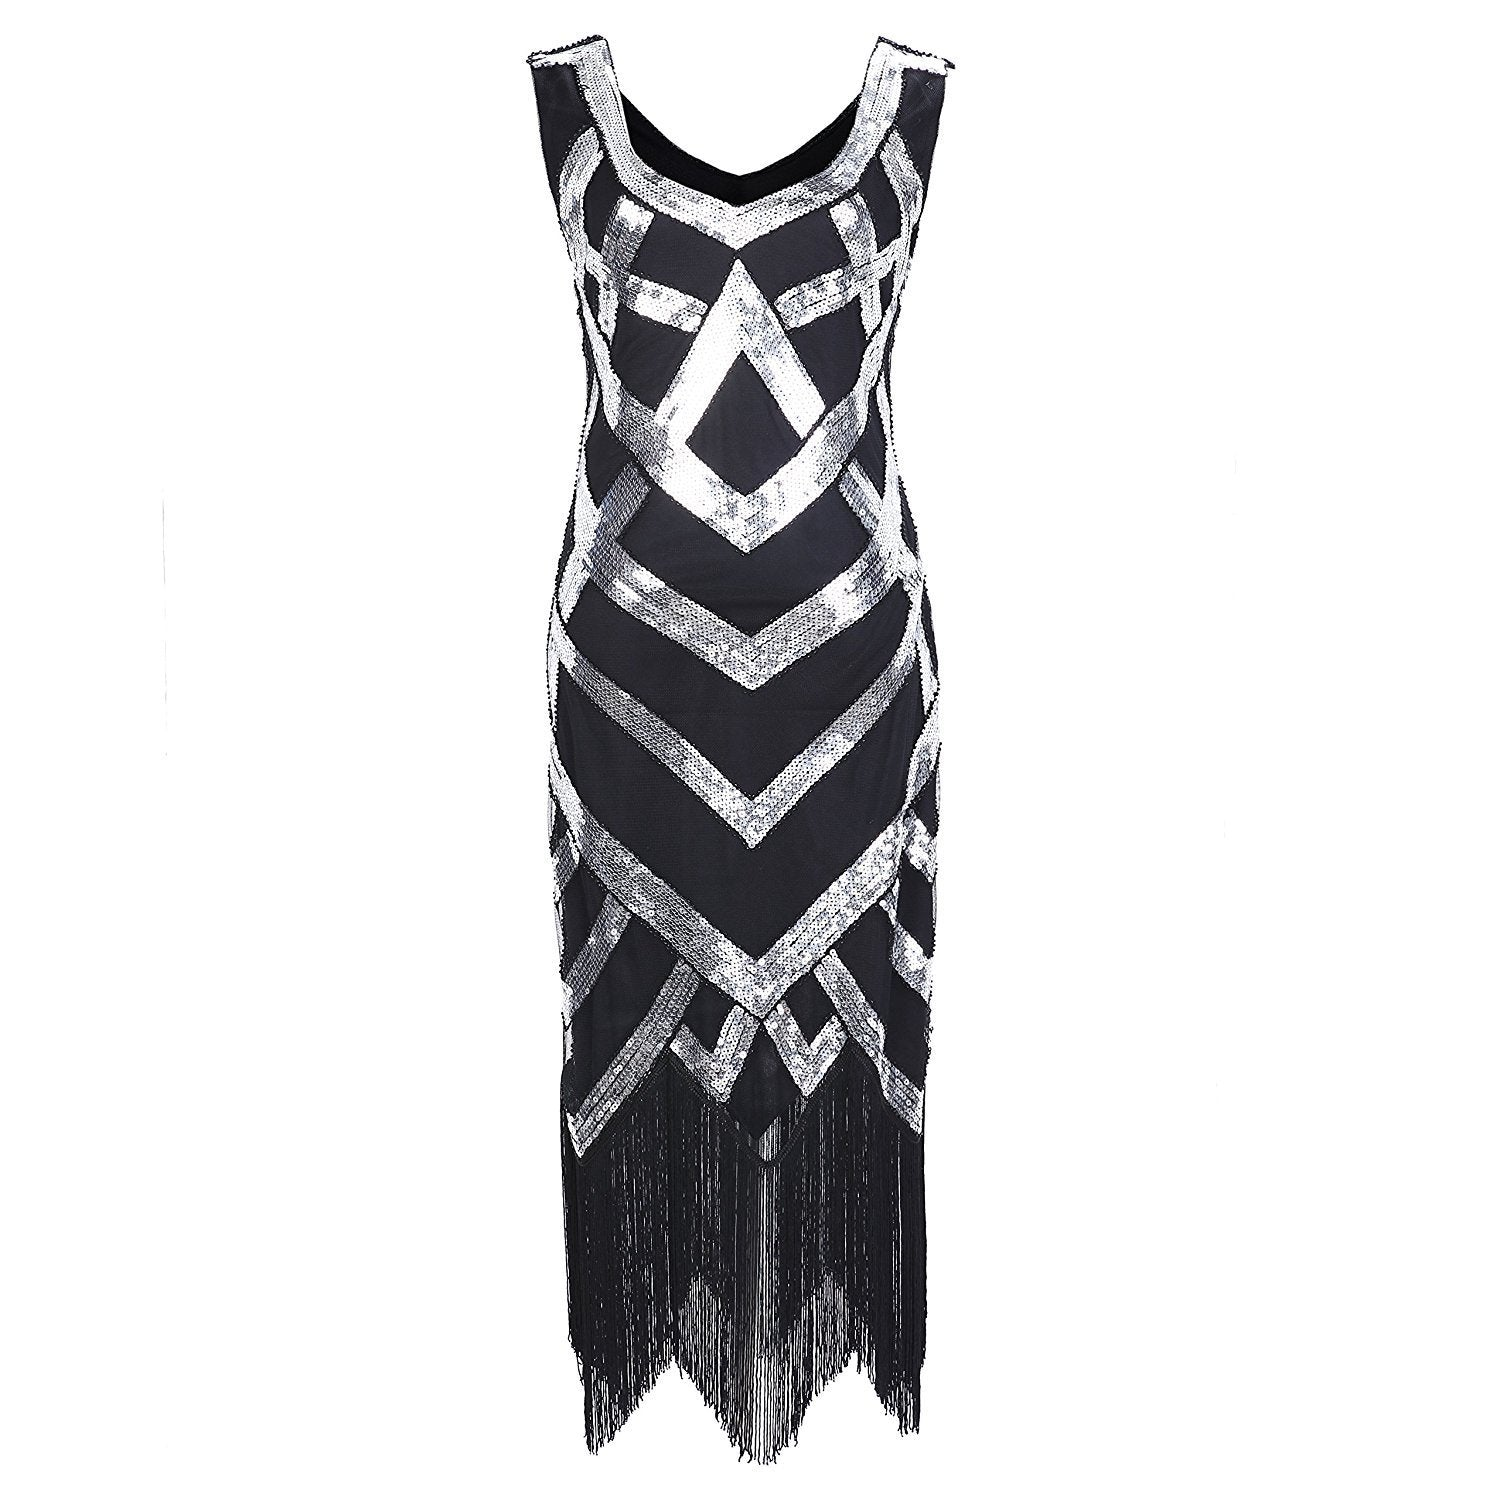 1920s Style Sequined Silver Fringe Flapper Dress